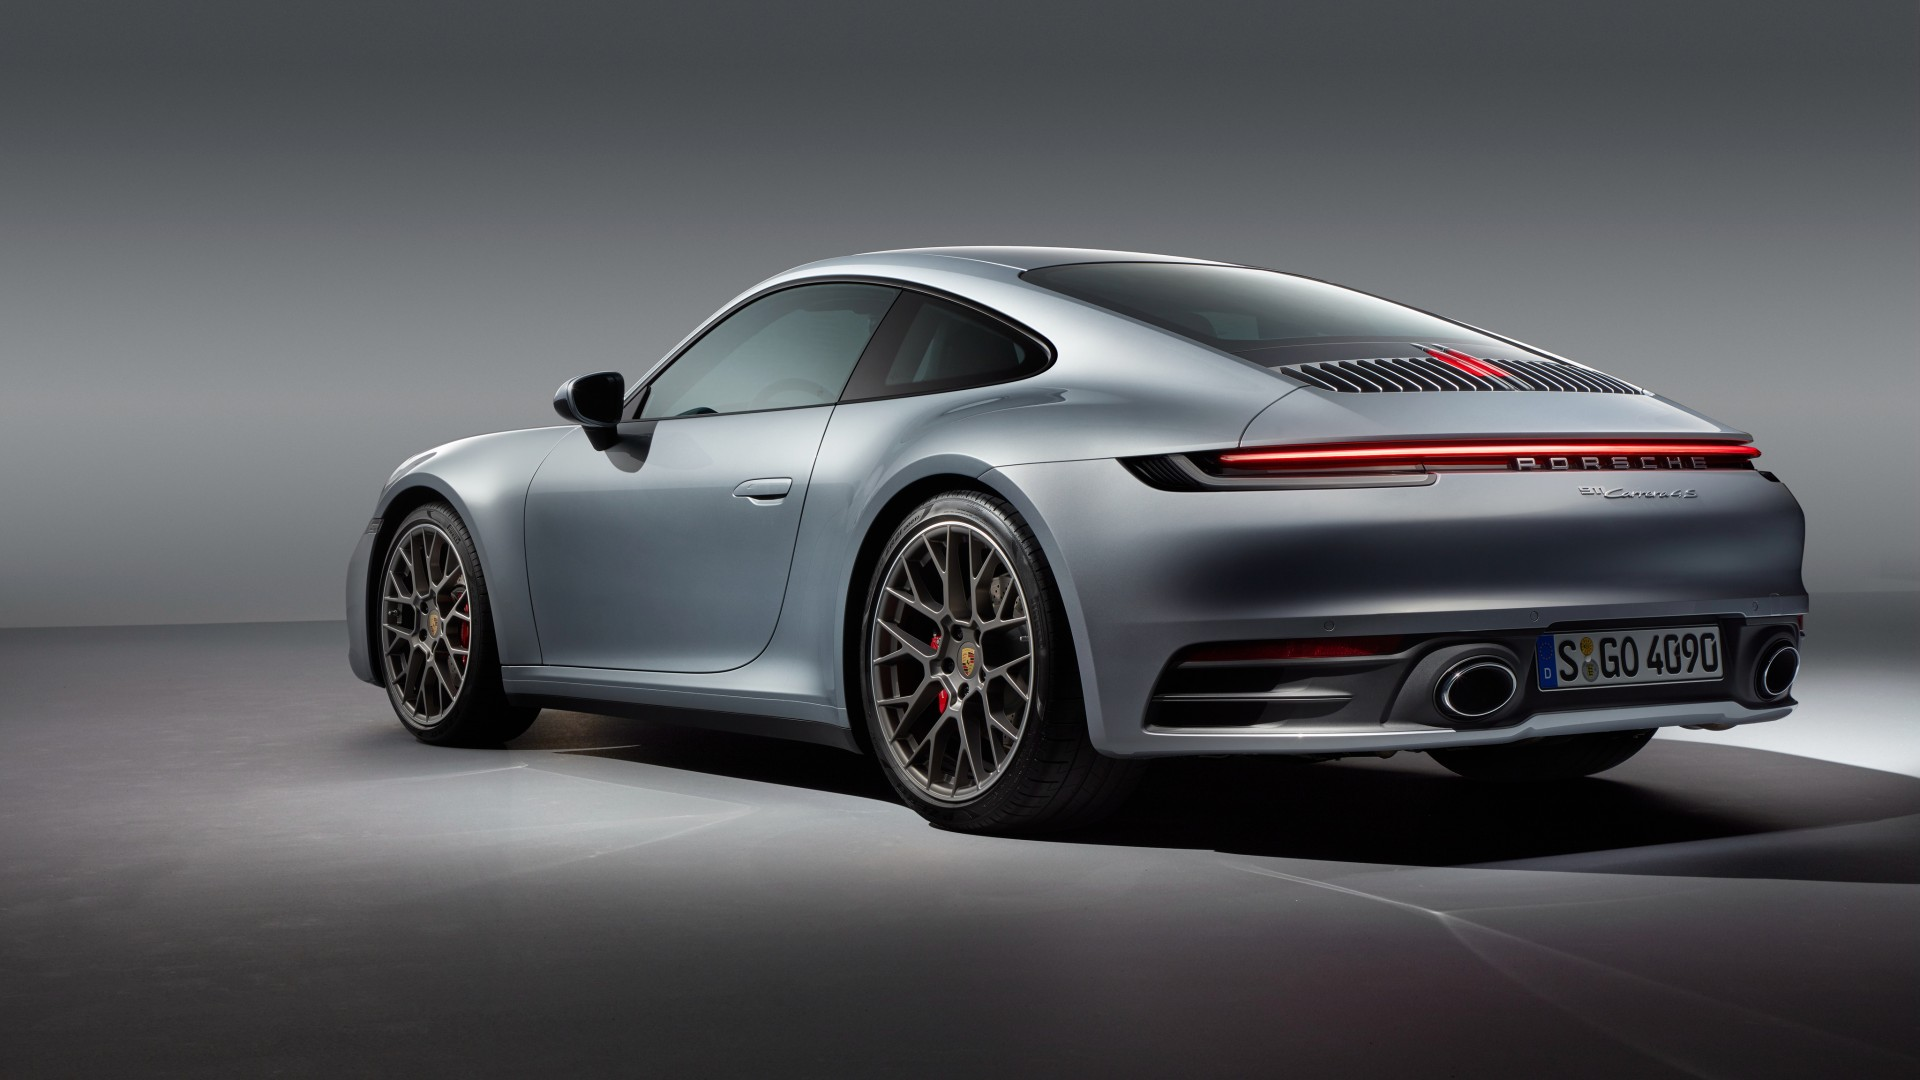 Porsche 911 Carrera 4S 2019 4K 4 Wallpaper | HD Car ...